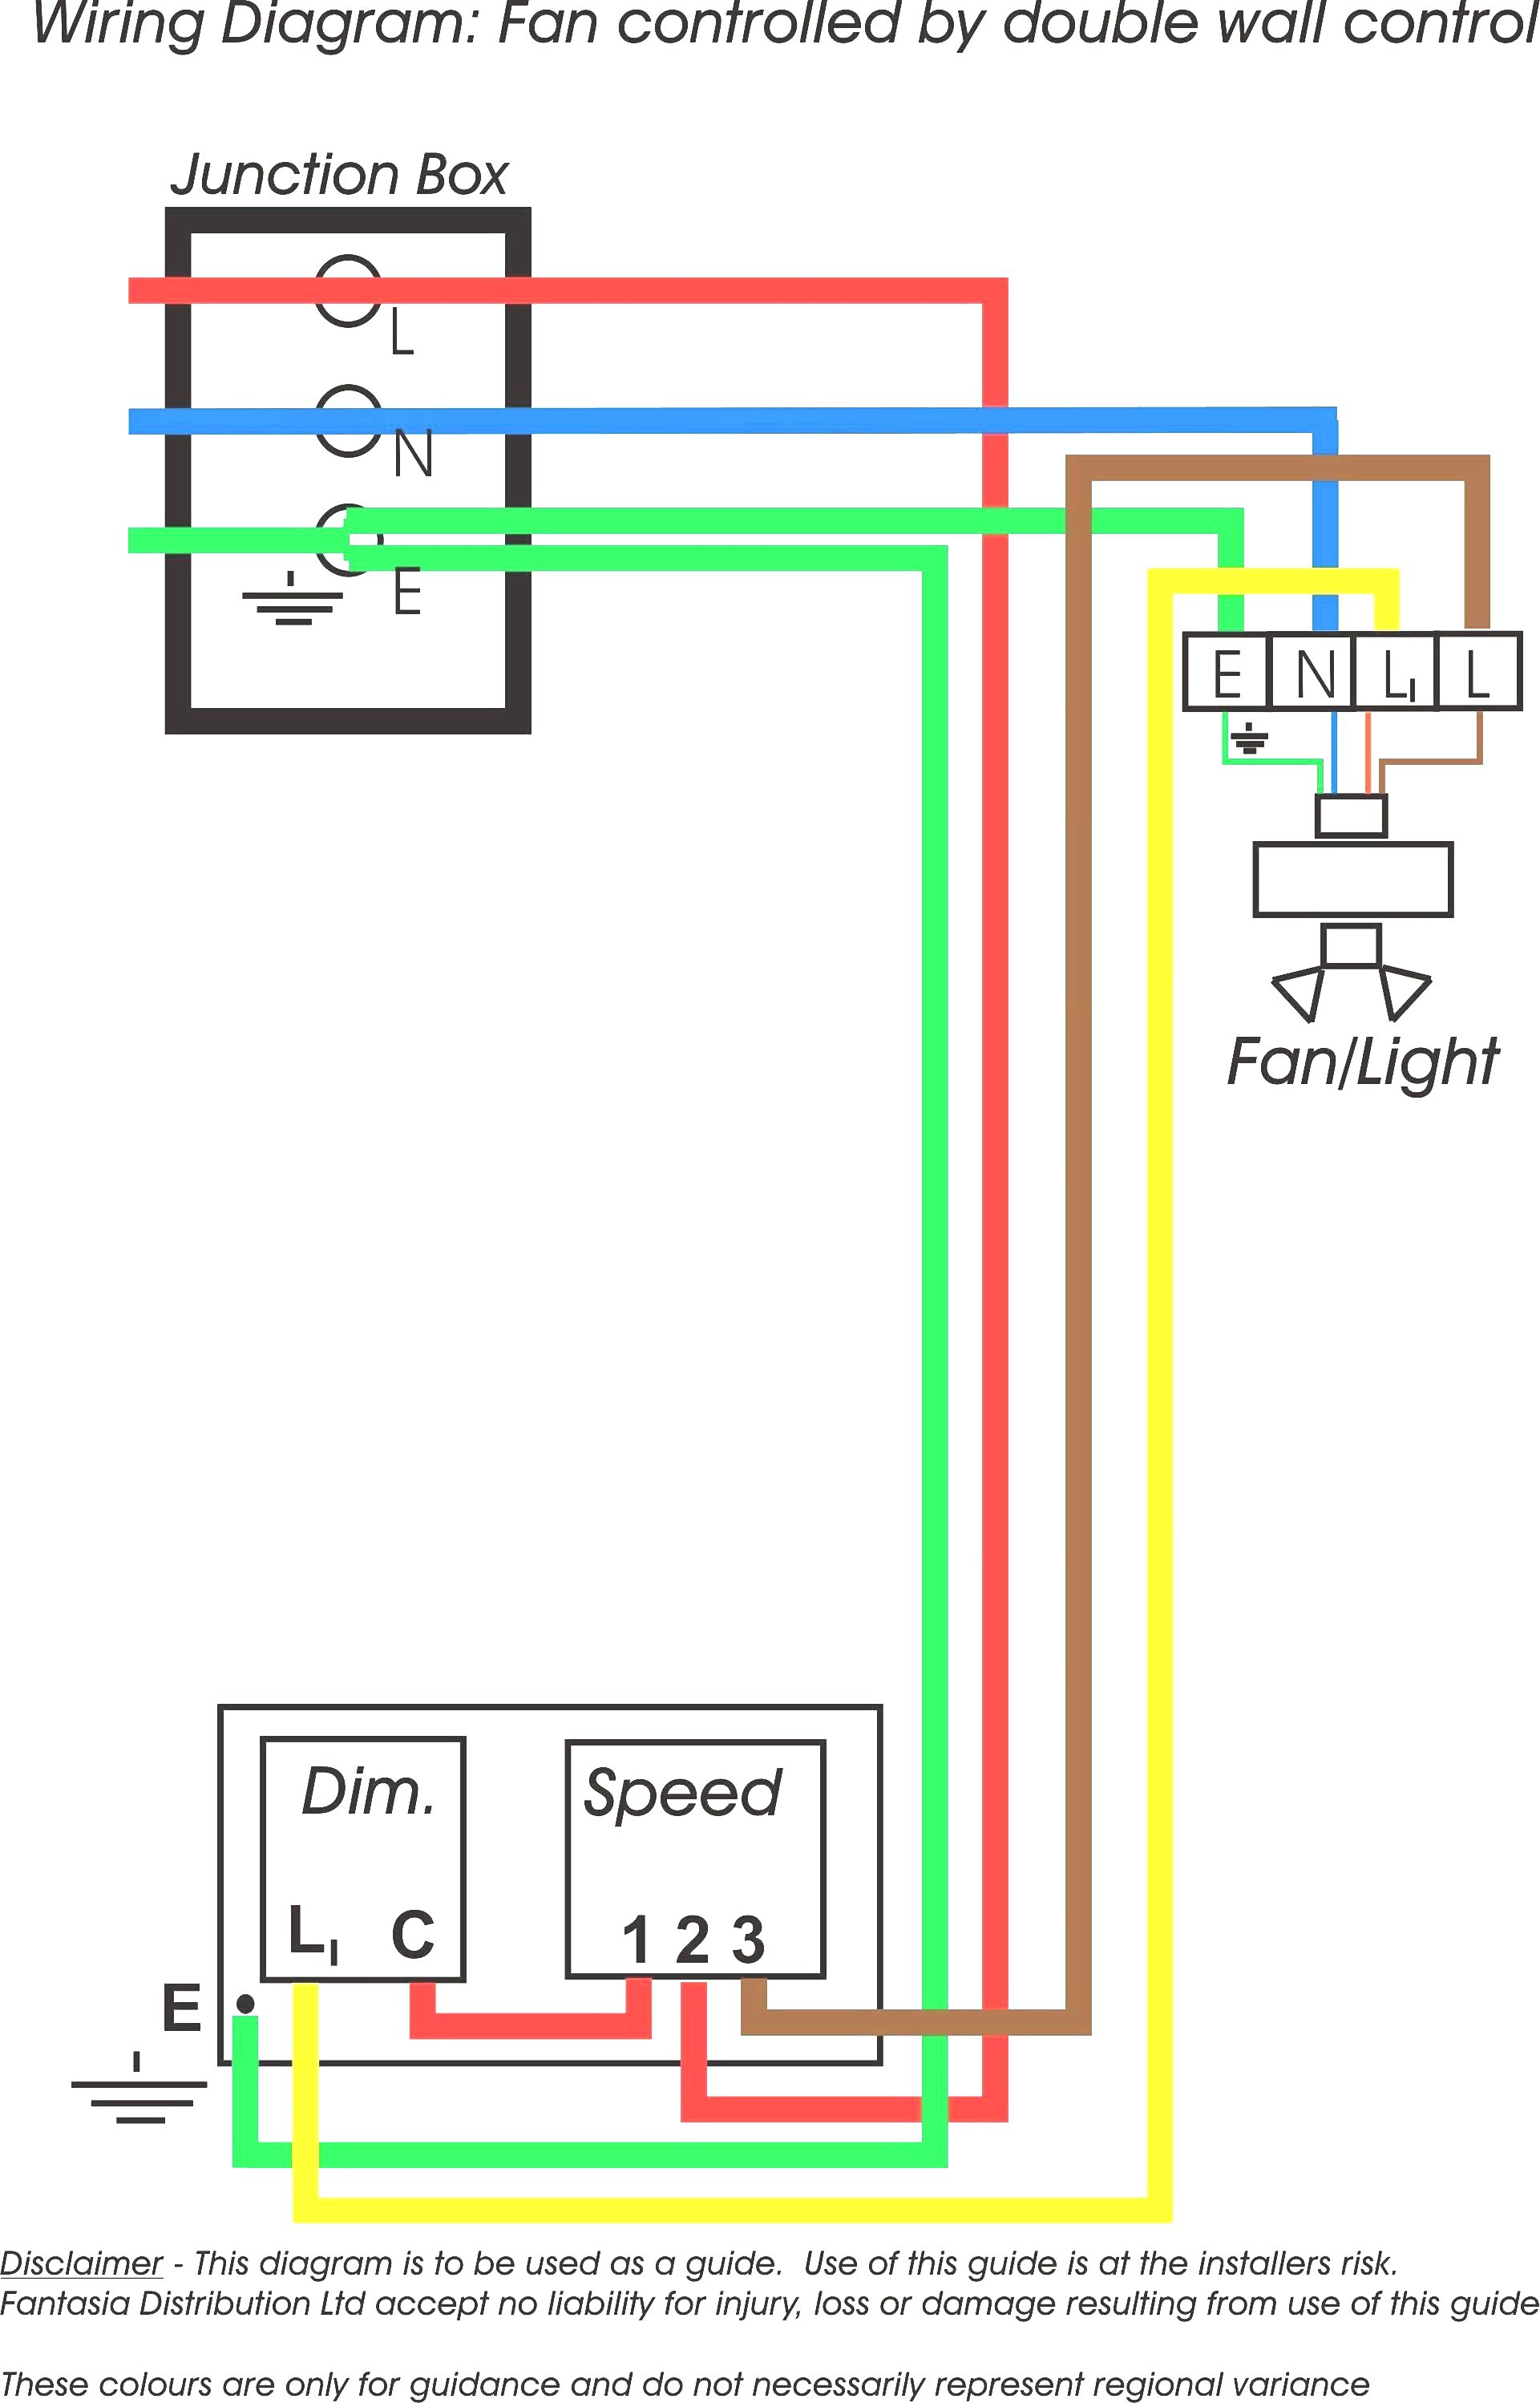 Pj Trailer Wiring Diagram | Wiring Diagram - Pj Trailer Wiring Diagram